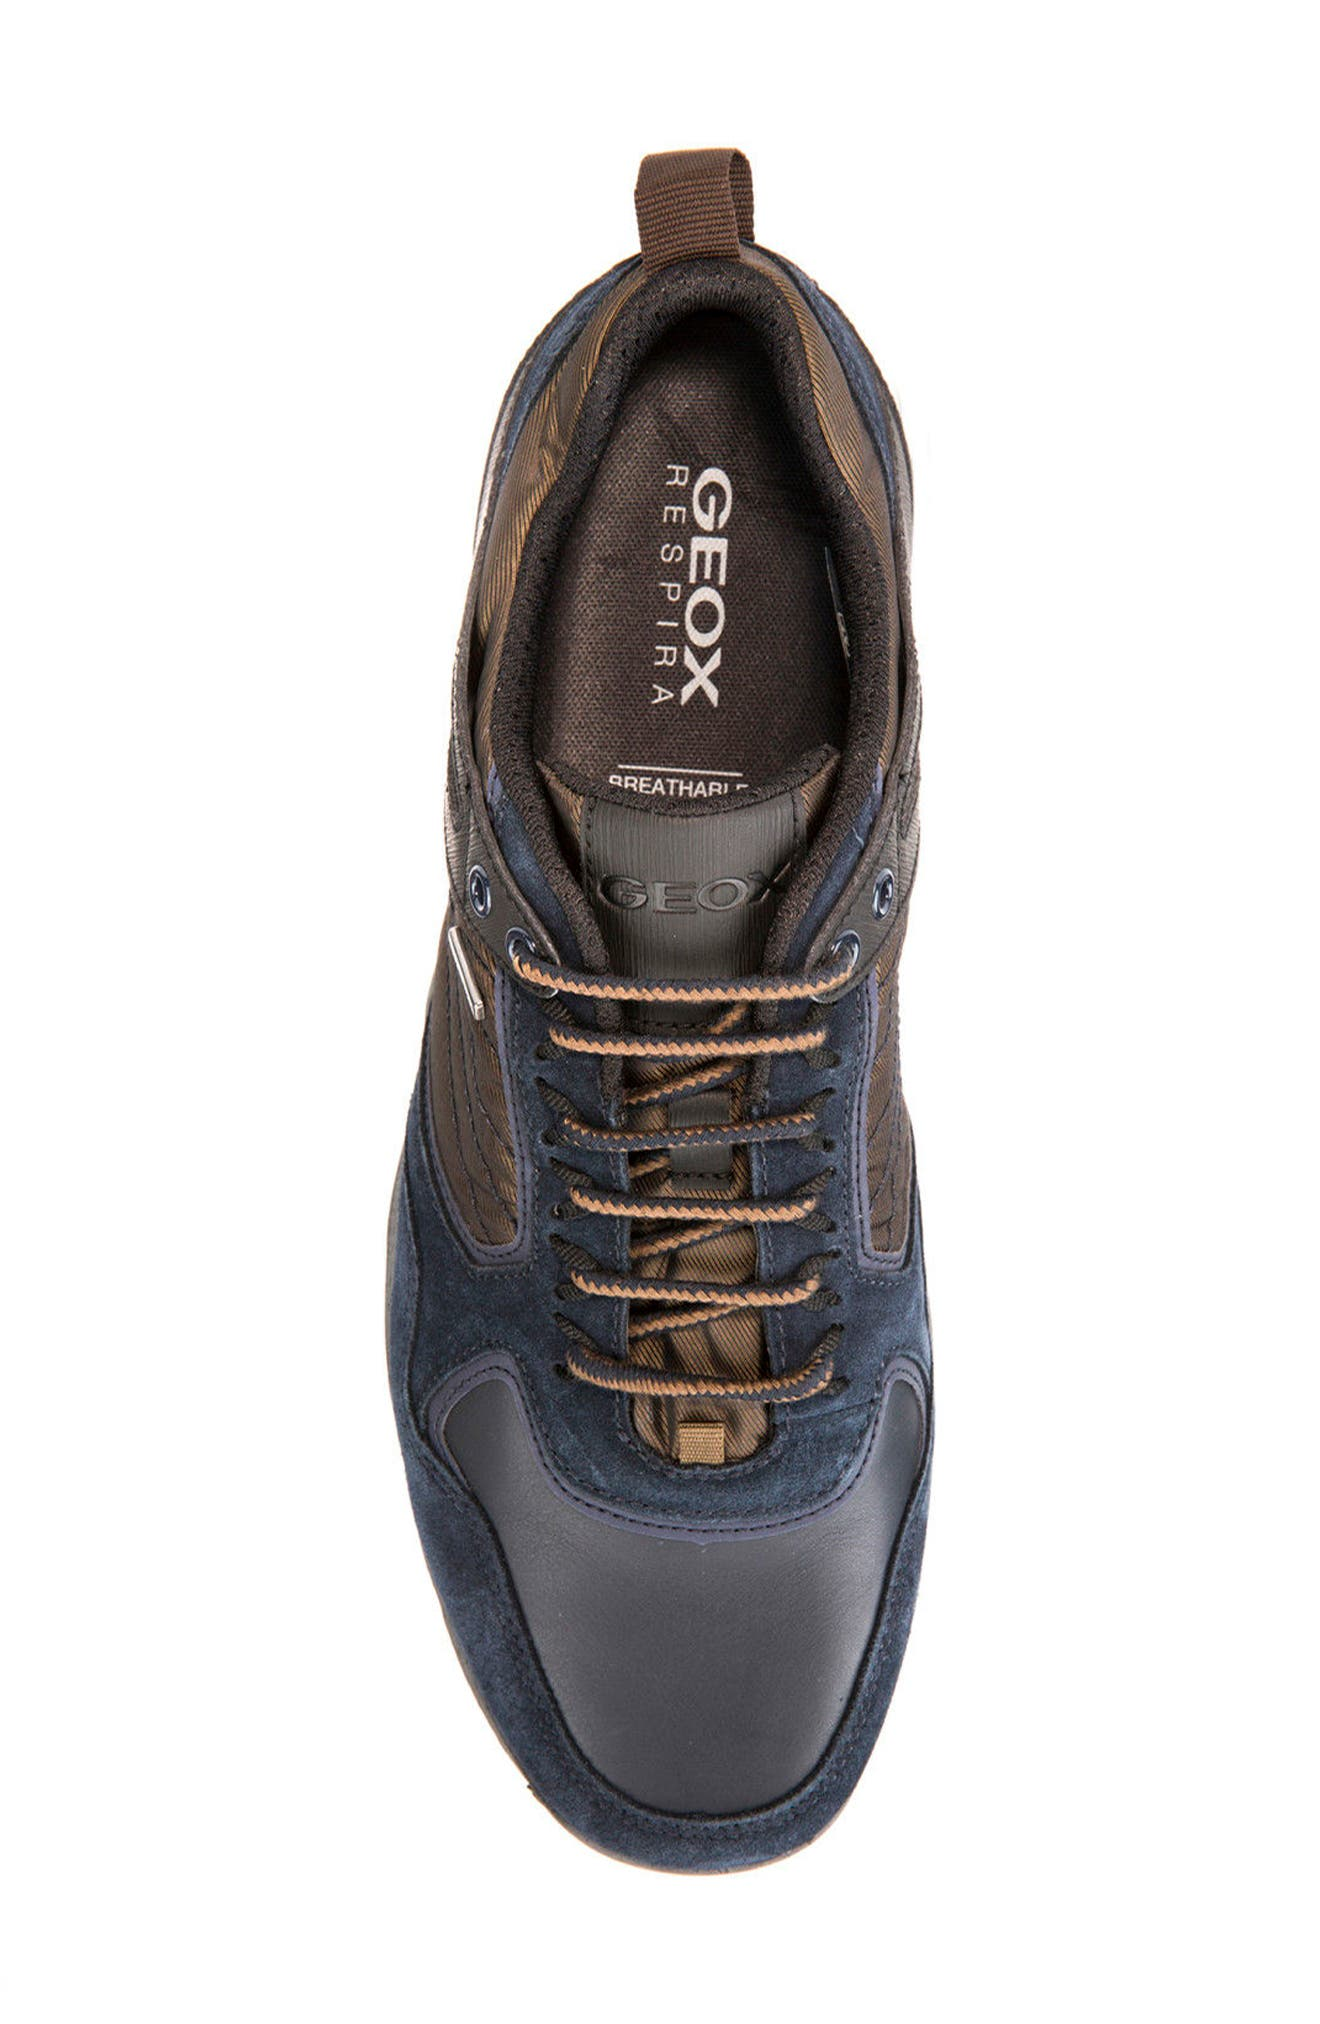 Gegy ABX Waterproof Sneaker,                             Alternate thumbnail 5, color,                             Navy/ Musk